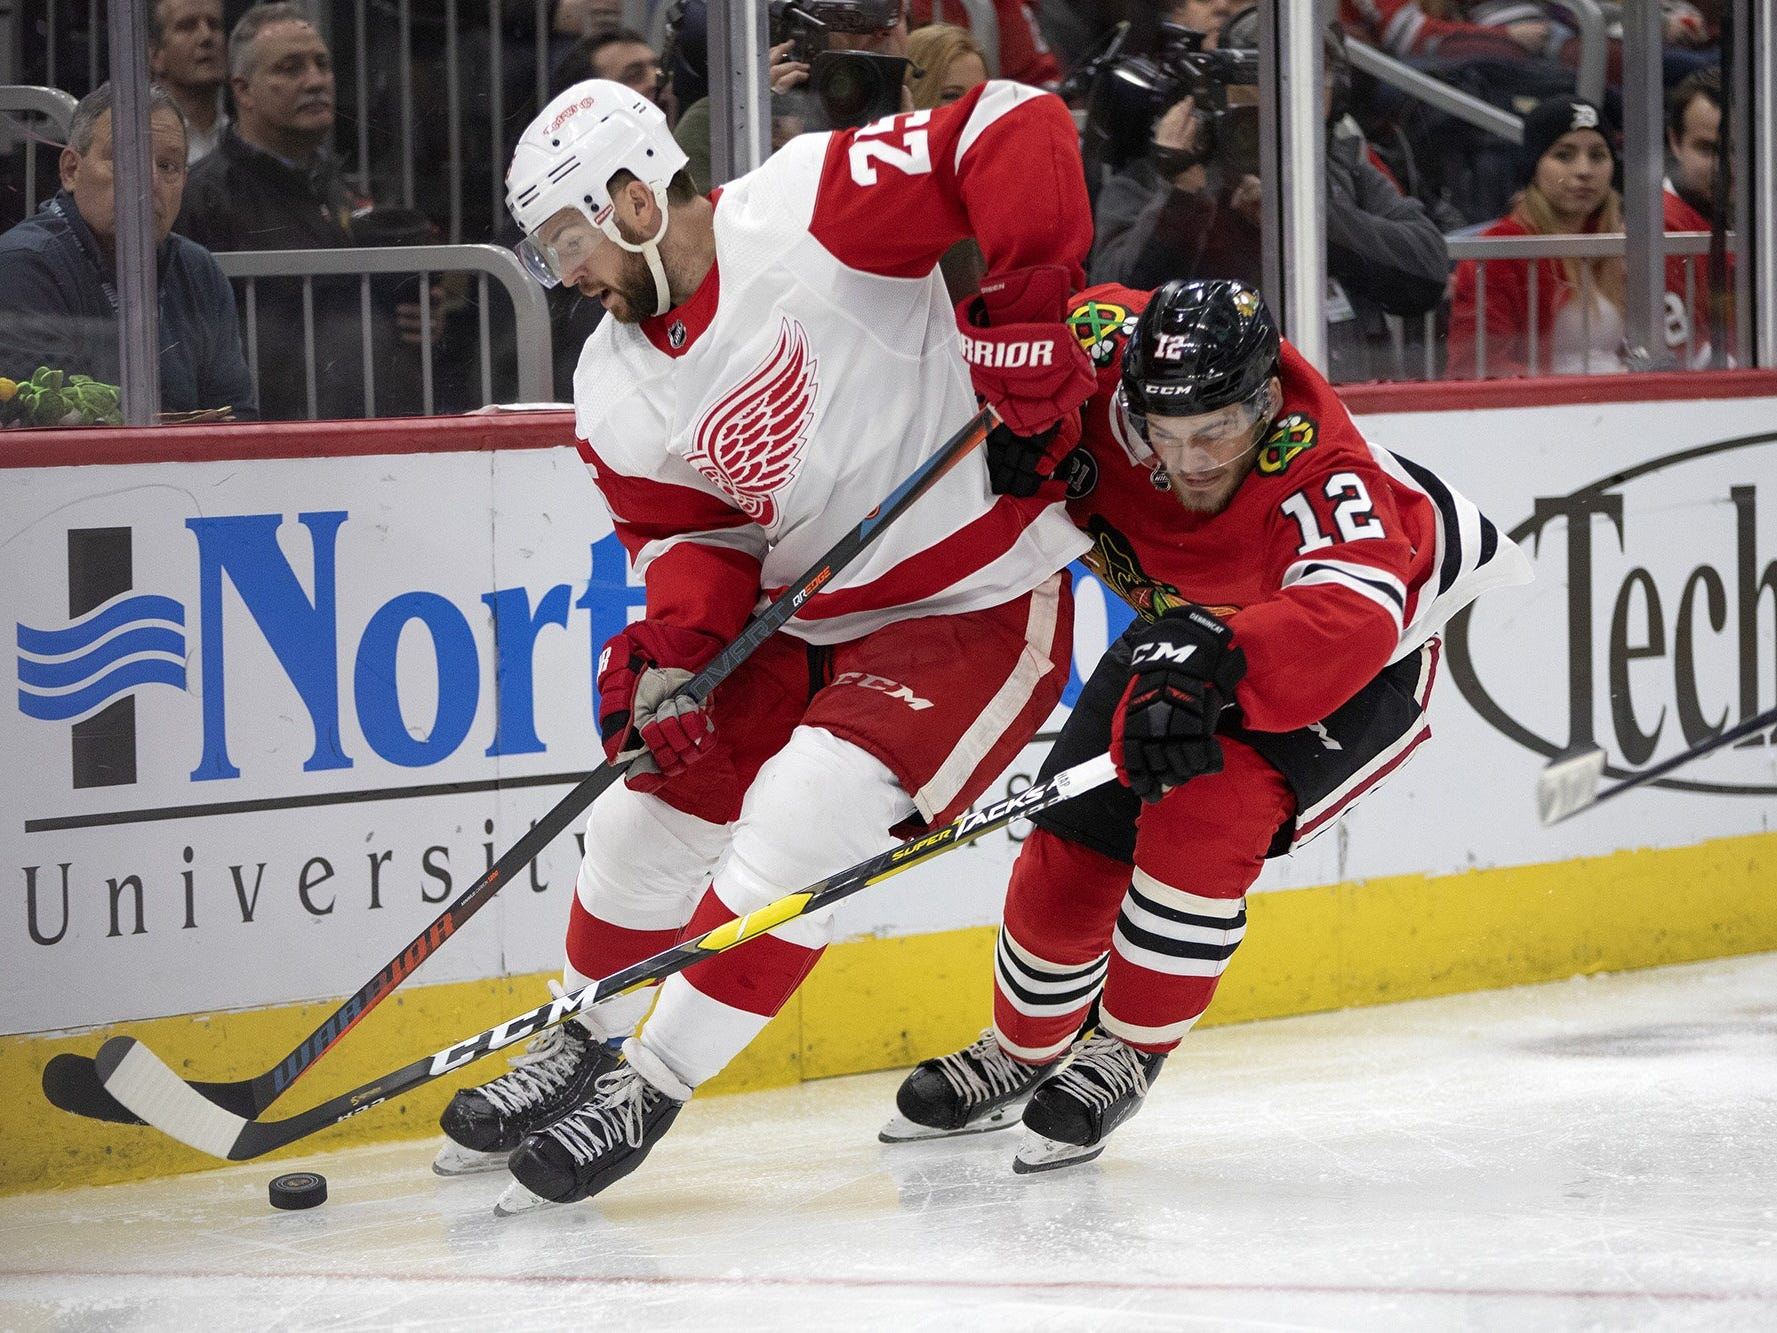 Chicago Blackhawks left wing Alex DeBrincat and Detroit Red Wings defenseman Mike Green fight for control of the puck during the third period on Sunday, Feb. 10, 2019, at the United Center in Chicago.